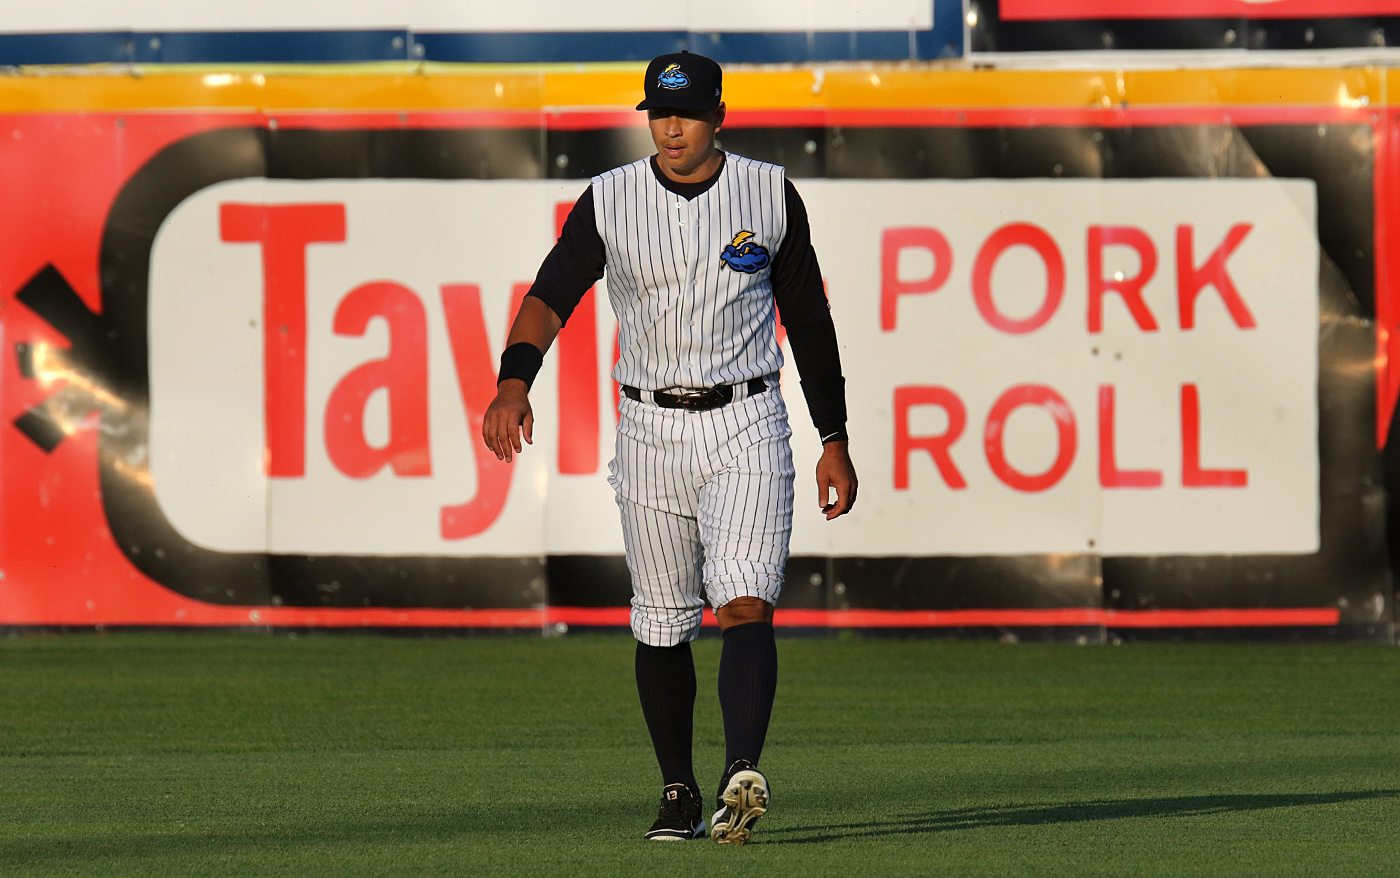 New York Yankees slugger Alex Rodriguez warms up in the outfield in front of a sign promoting one of Trenton's most well known delicacies at ARM & HAMMER Park in Trenton on Wednesday, May 25, 2016 before a game against the New Hampshire Fisher Cats. Rodriguez joined the Double A Yankee farm team for a second day as part of a rehab assignment. Photo by Martin Griff